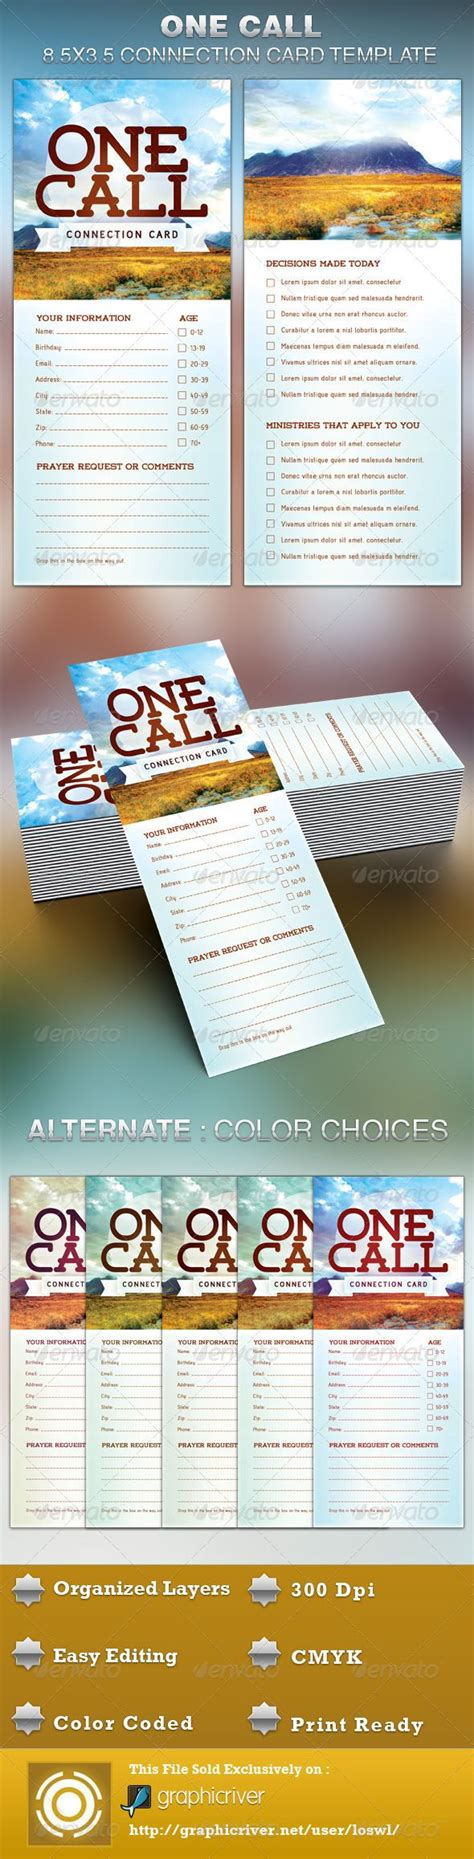 Church Connection Card Template by One Call Church Connection Card Template By